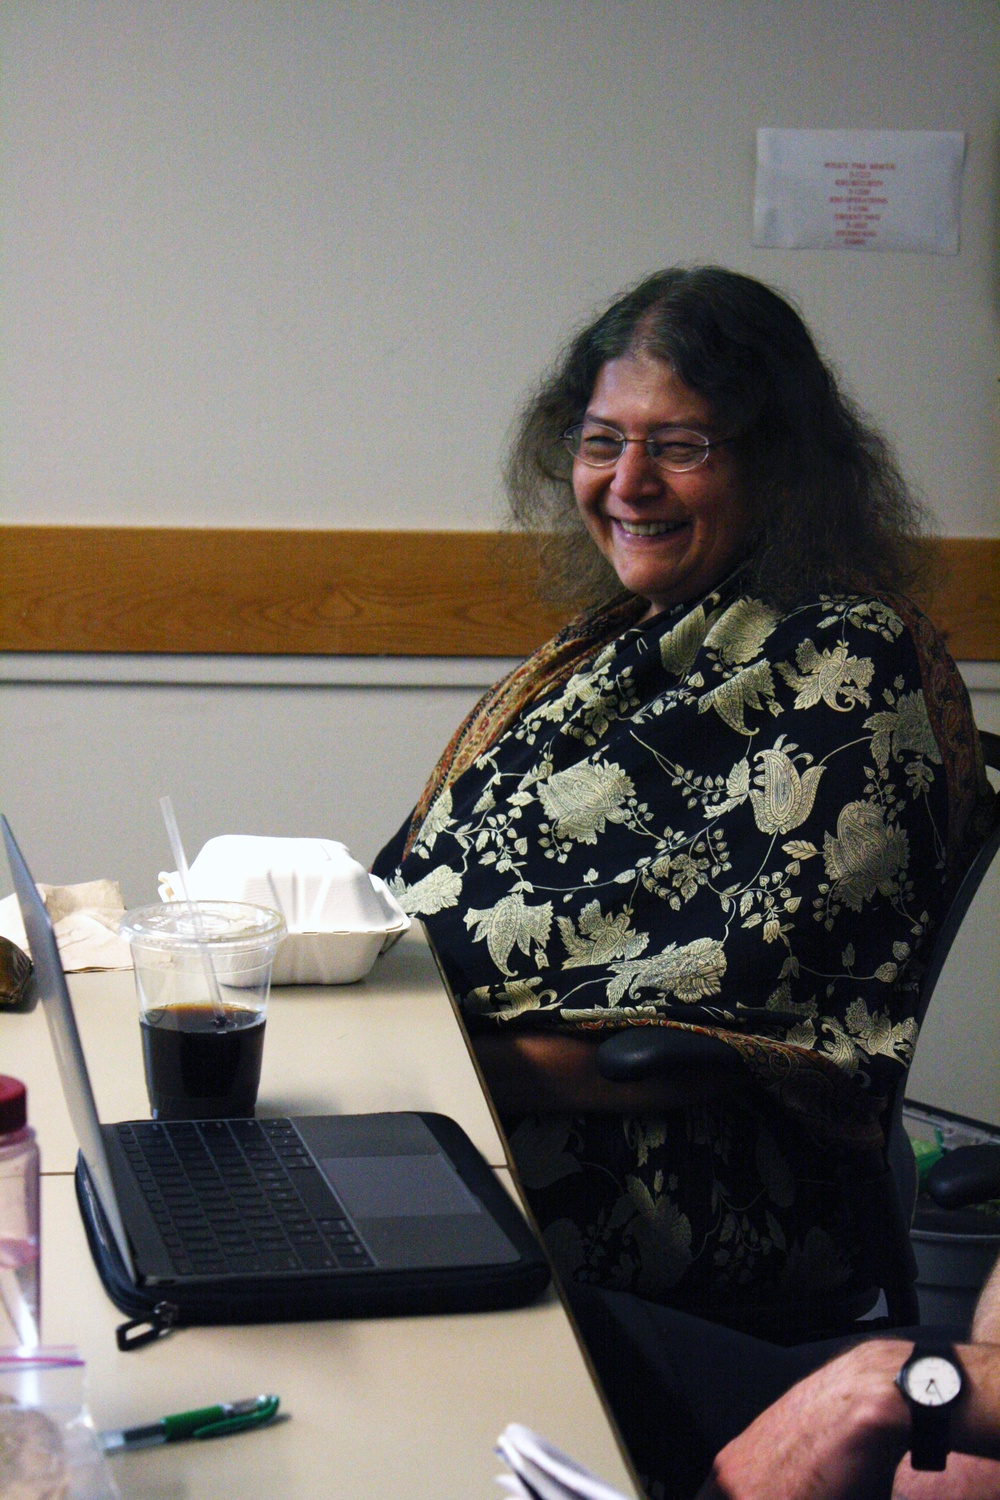 Professor Sheila Jasanoff '64 leads a weekly meeting about Science, Technology, and Society on Tuesday, Nov. 17, 2015.